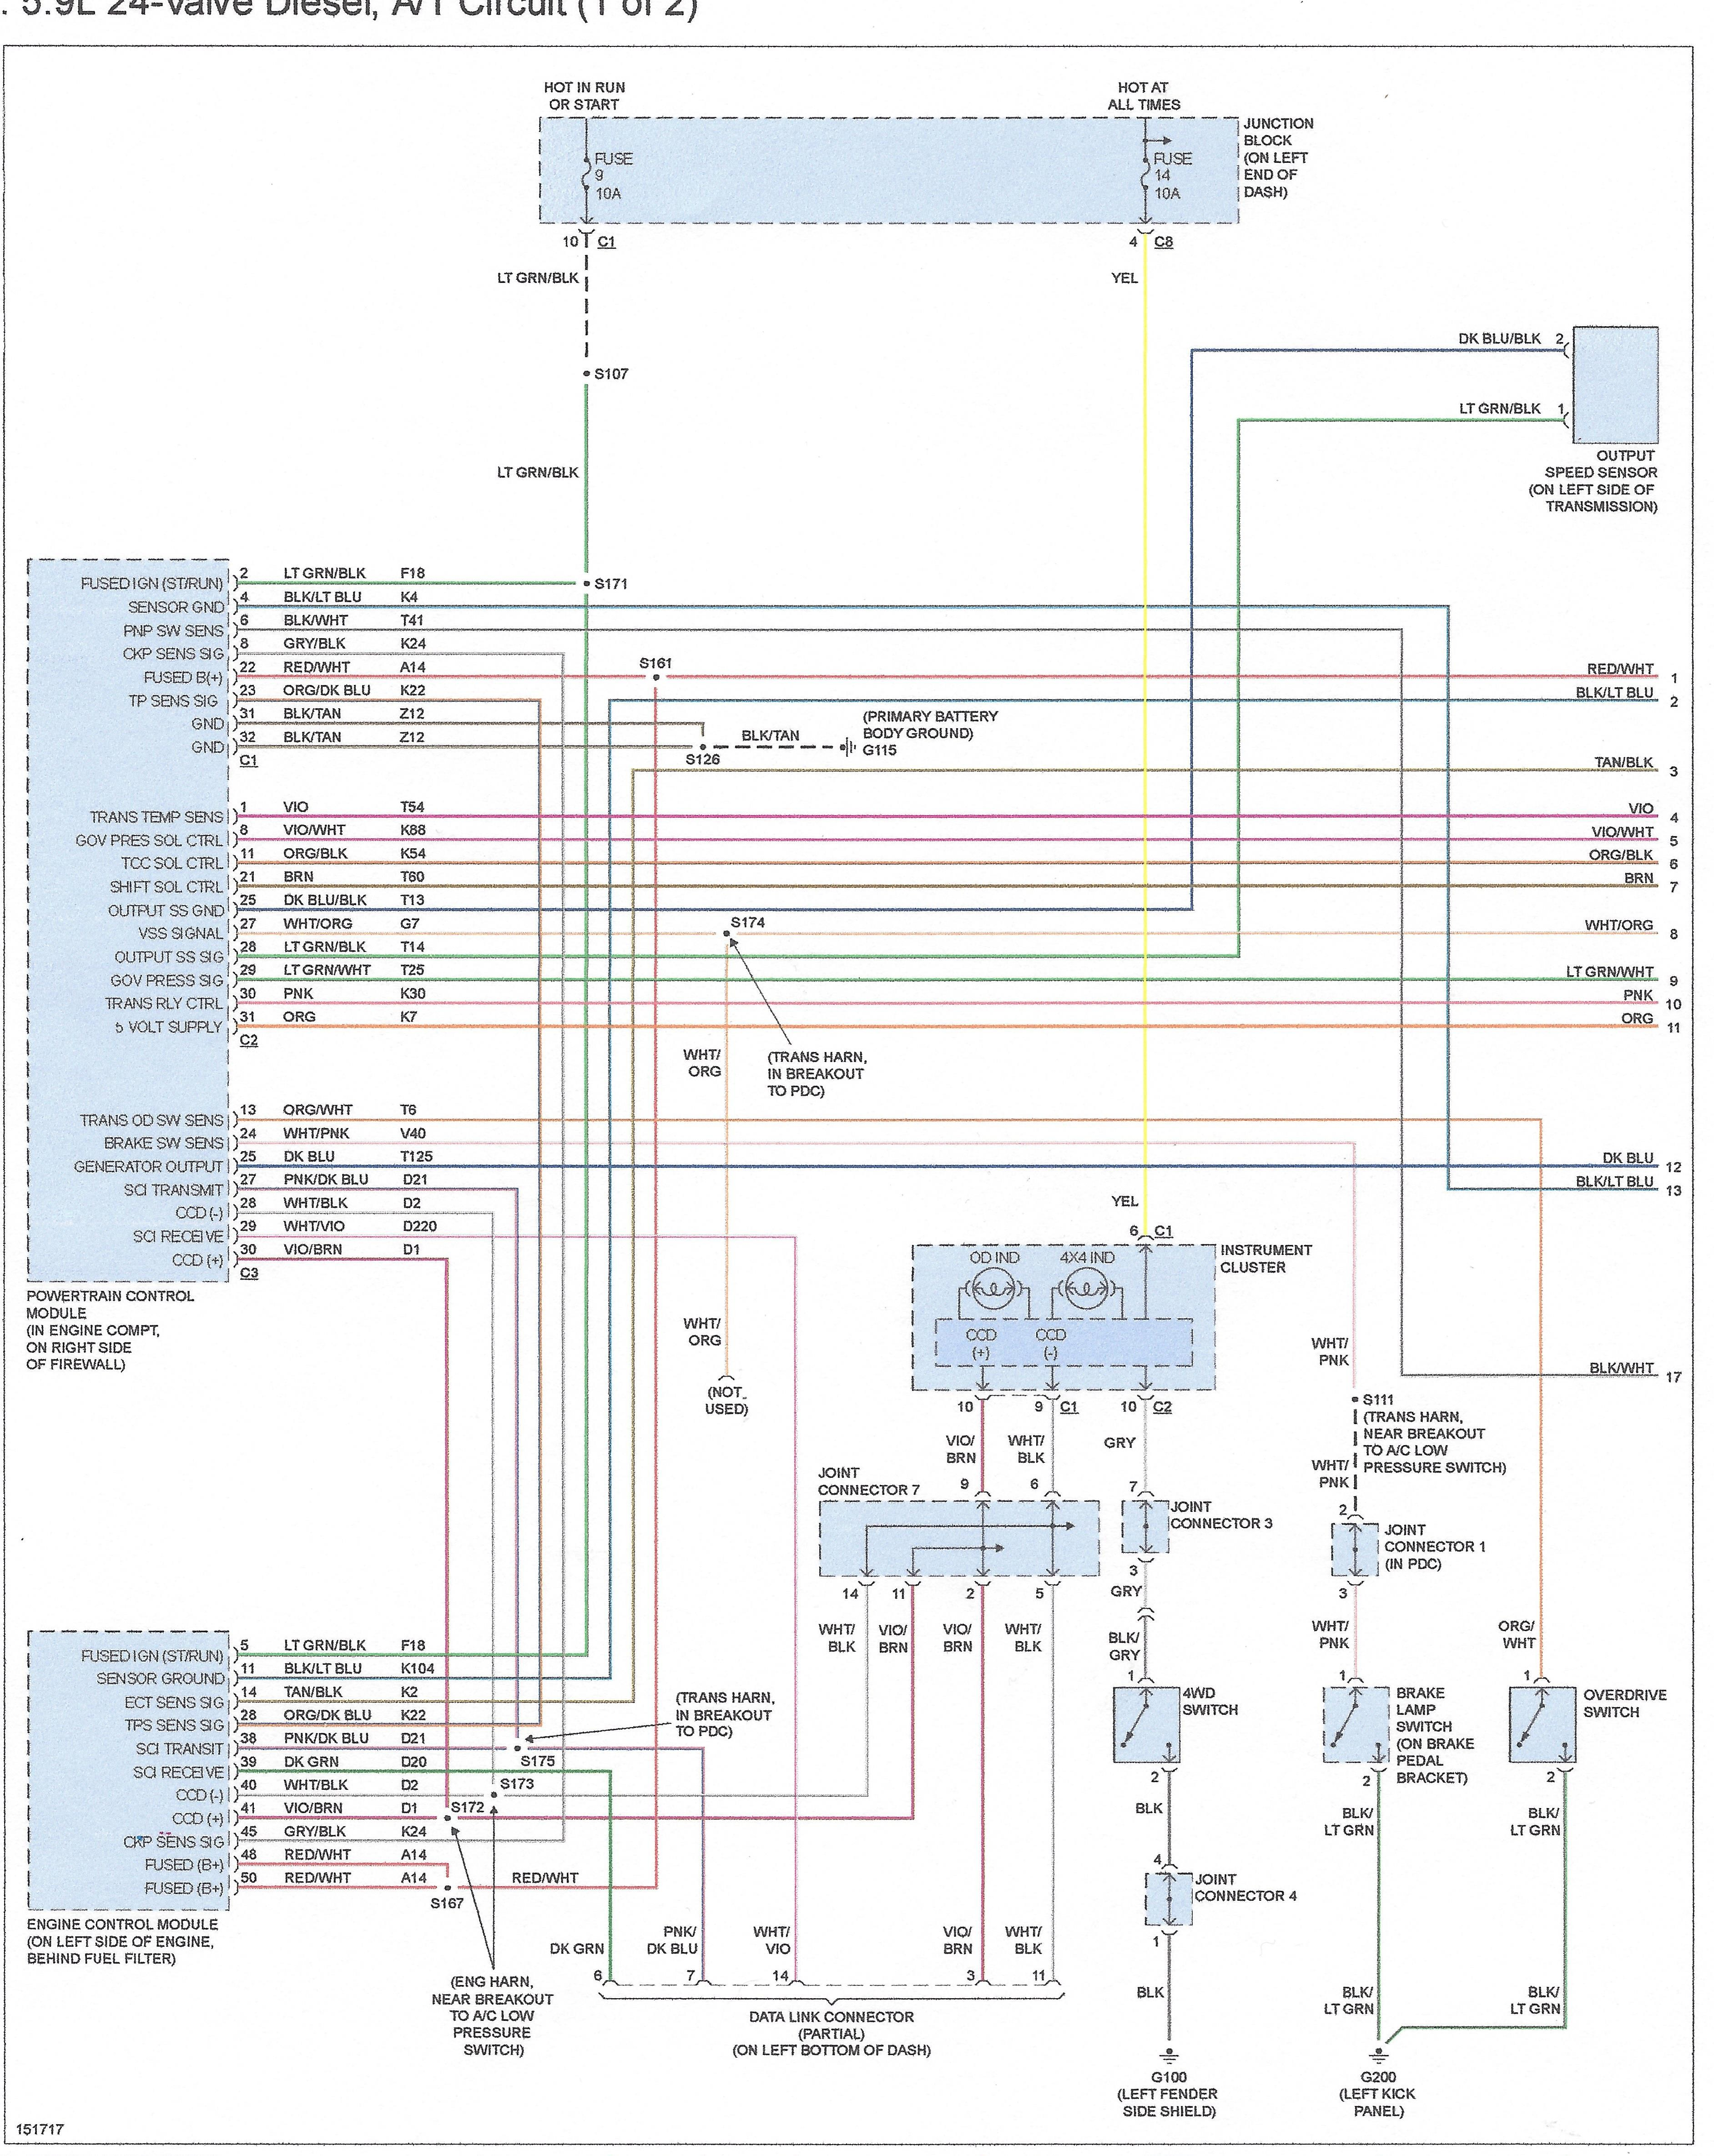 Dodge Ram 1500 Engine Diagram Cummins Diesel Fuel Line Obd2 Wiring Tcc Of